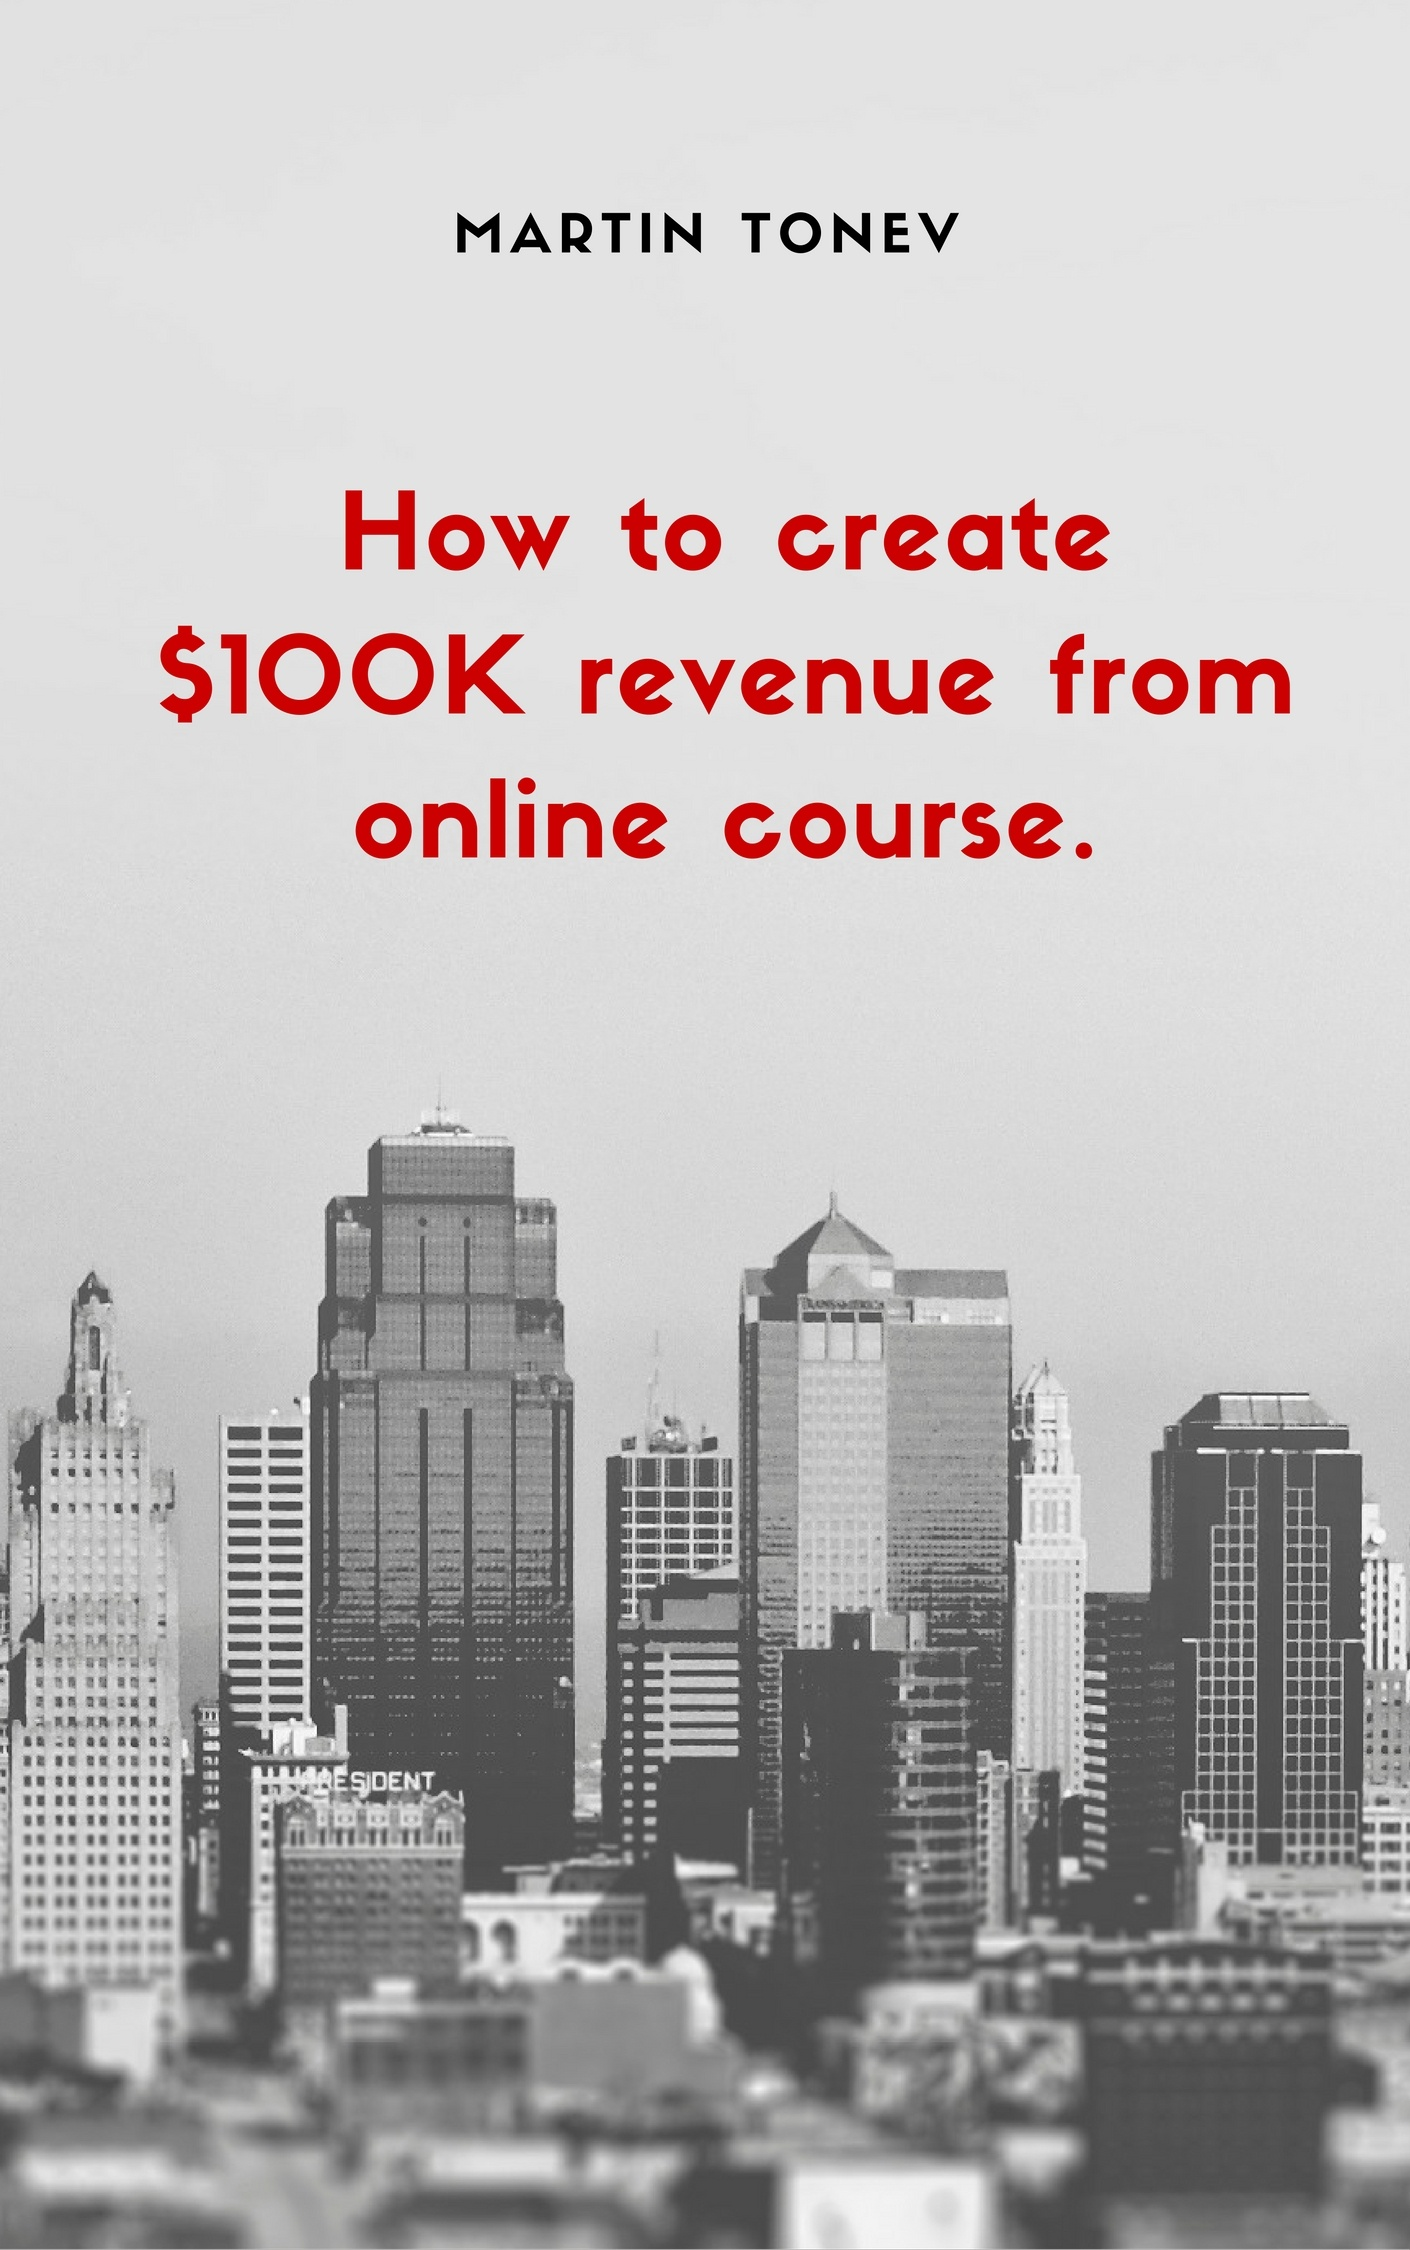 What you want to know about creating a $100k online course